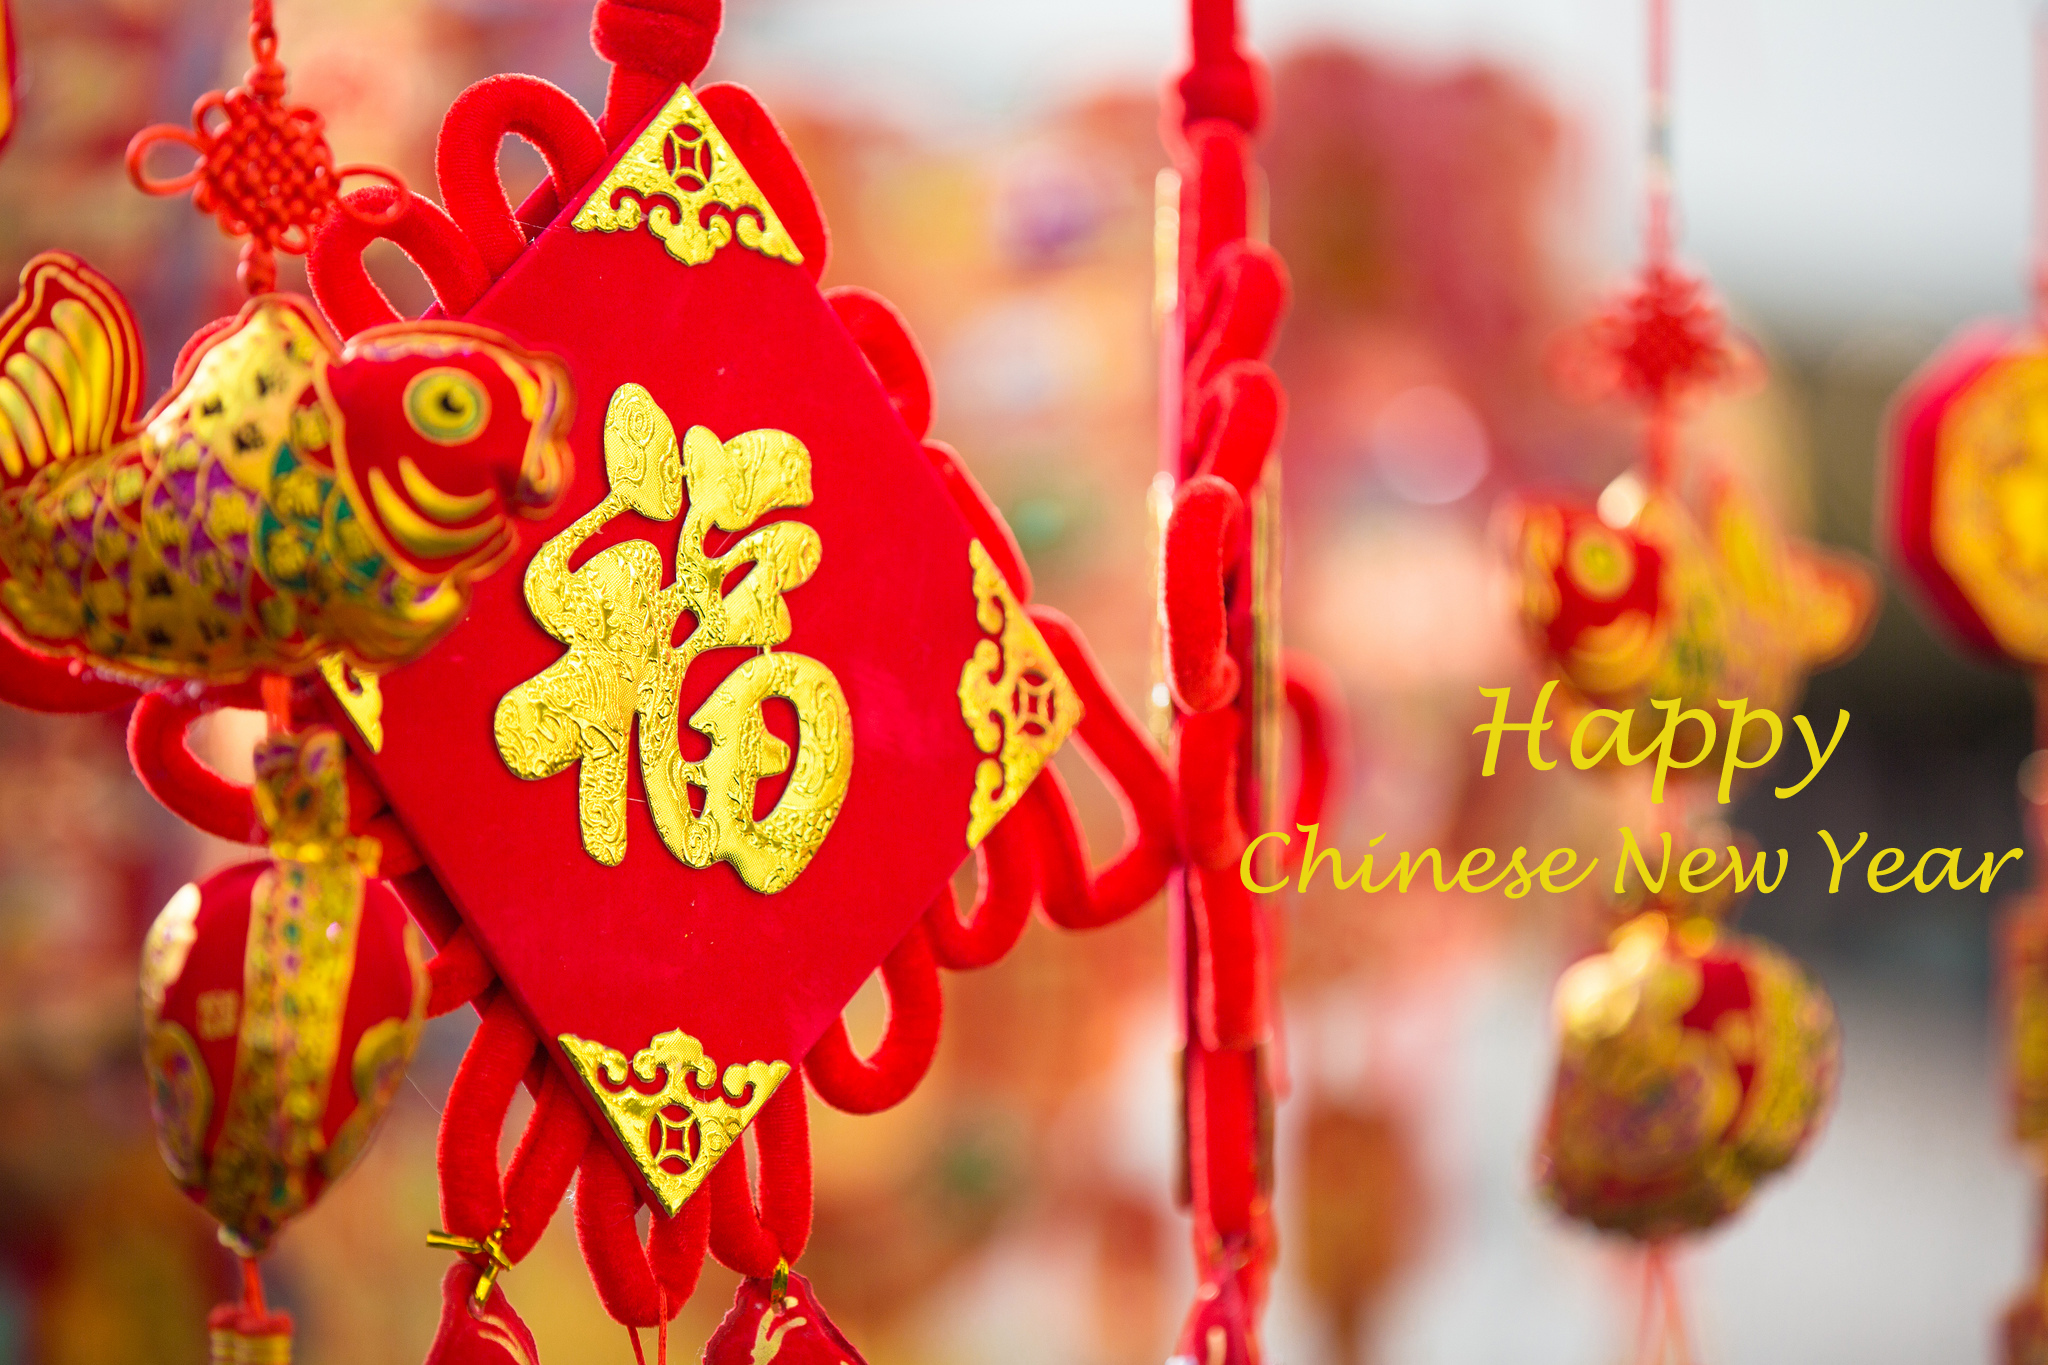 Chinese New Year Decorations for Wallpaper - HD Wallpapers ...